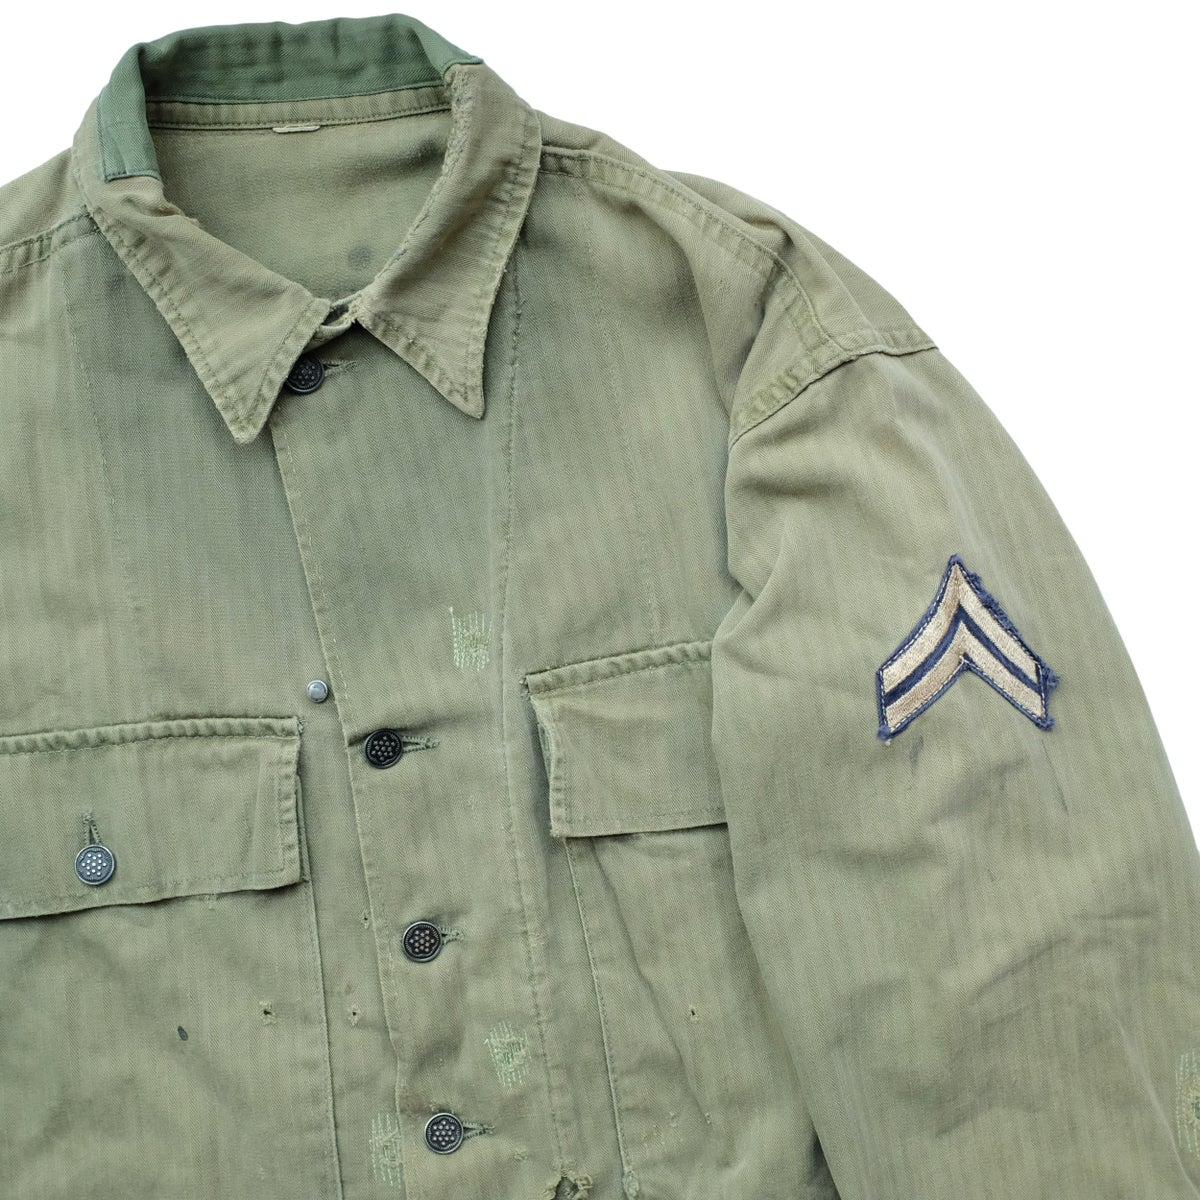 Image of 1940s Vintage M-43 HBT Jacket with Artwork/Stencil